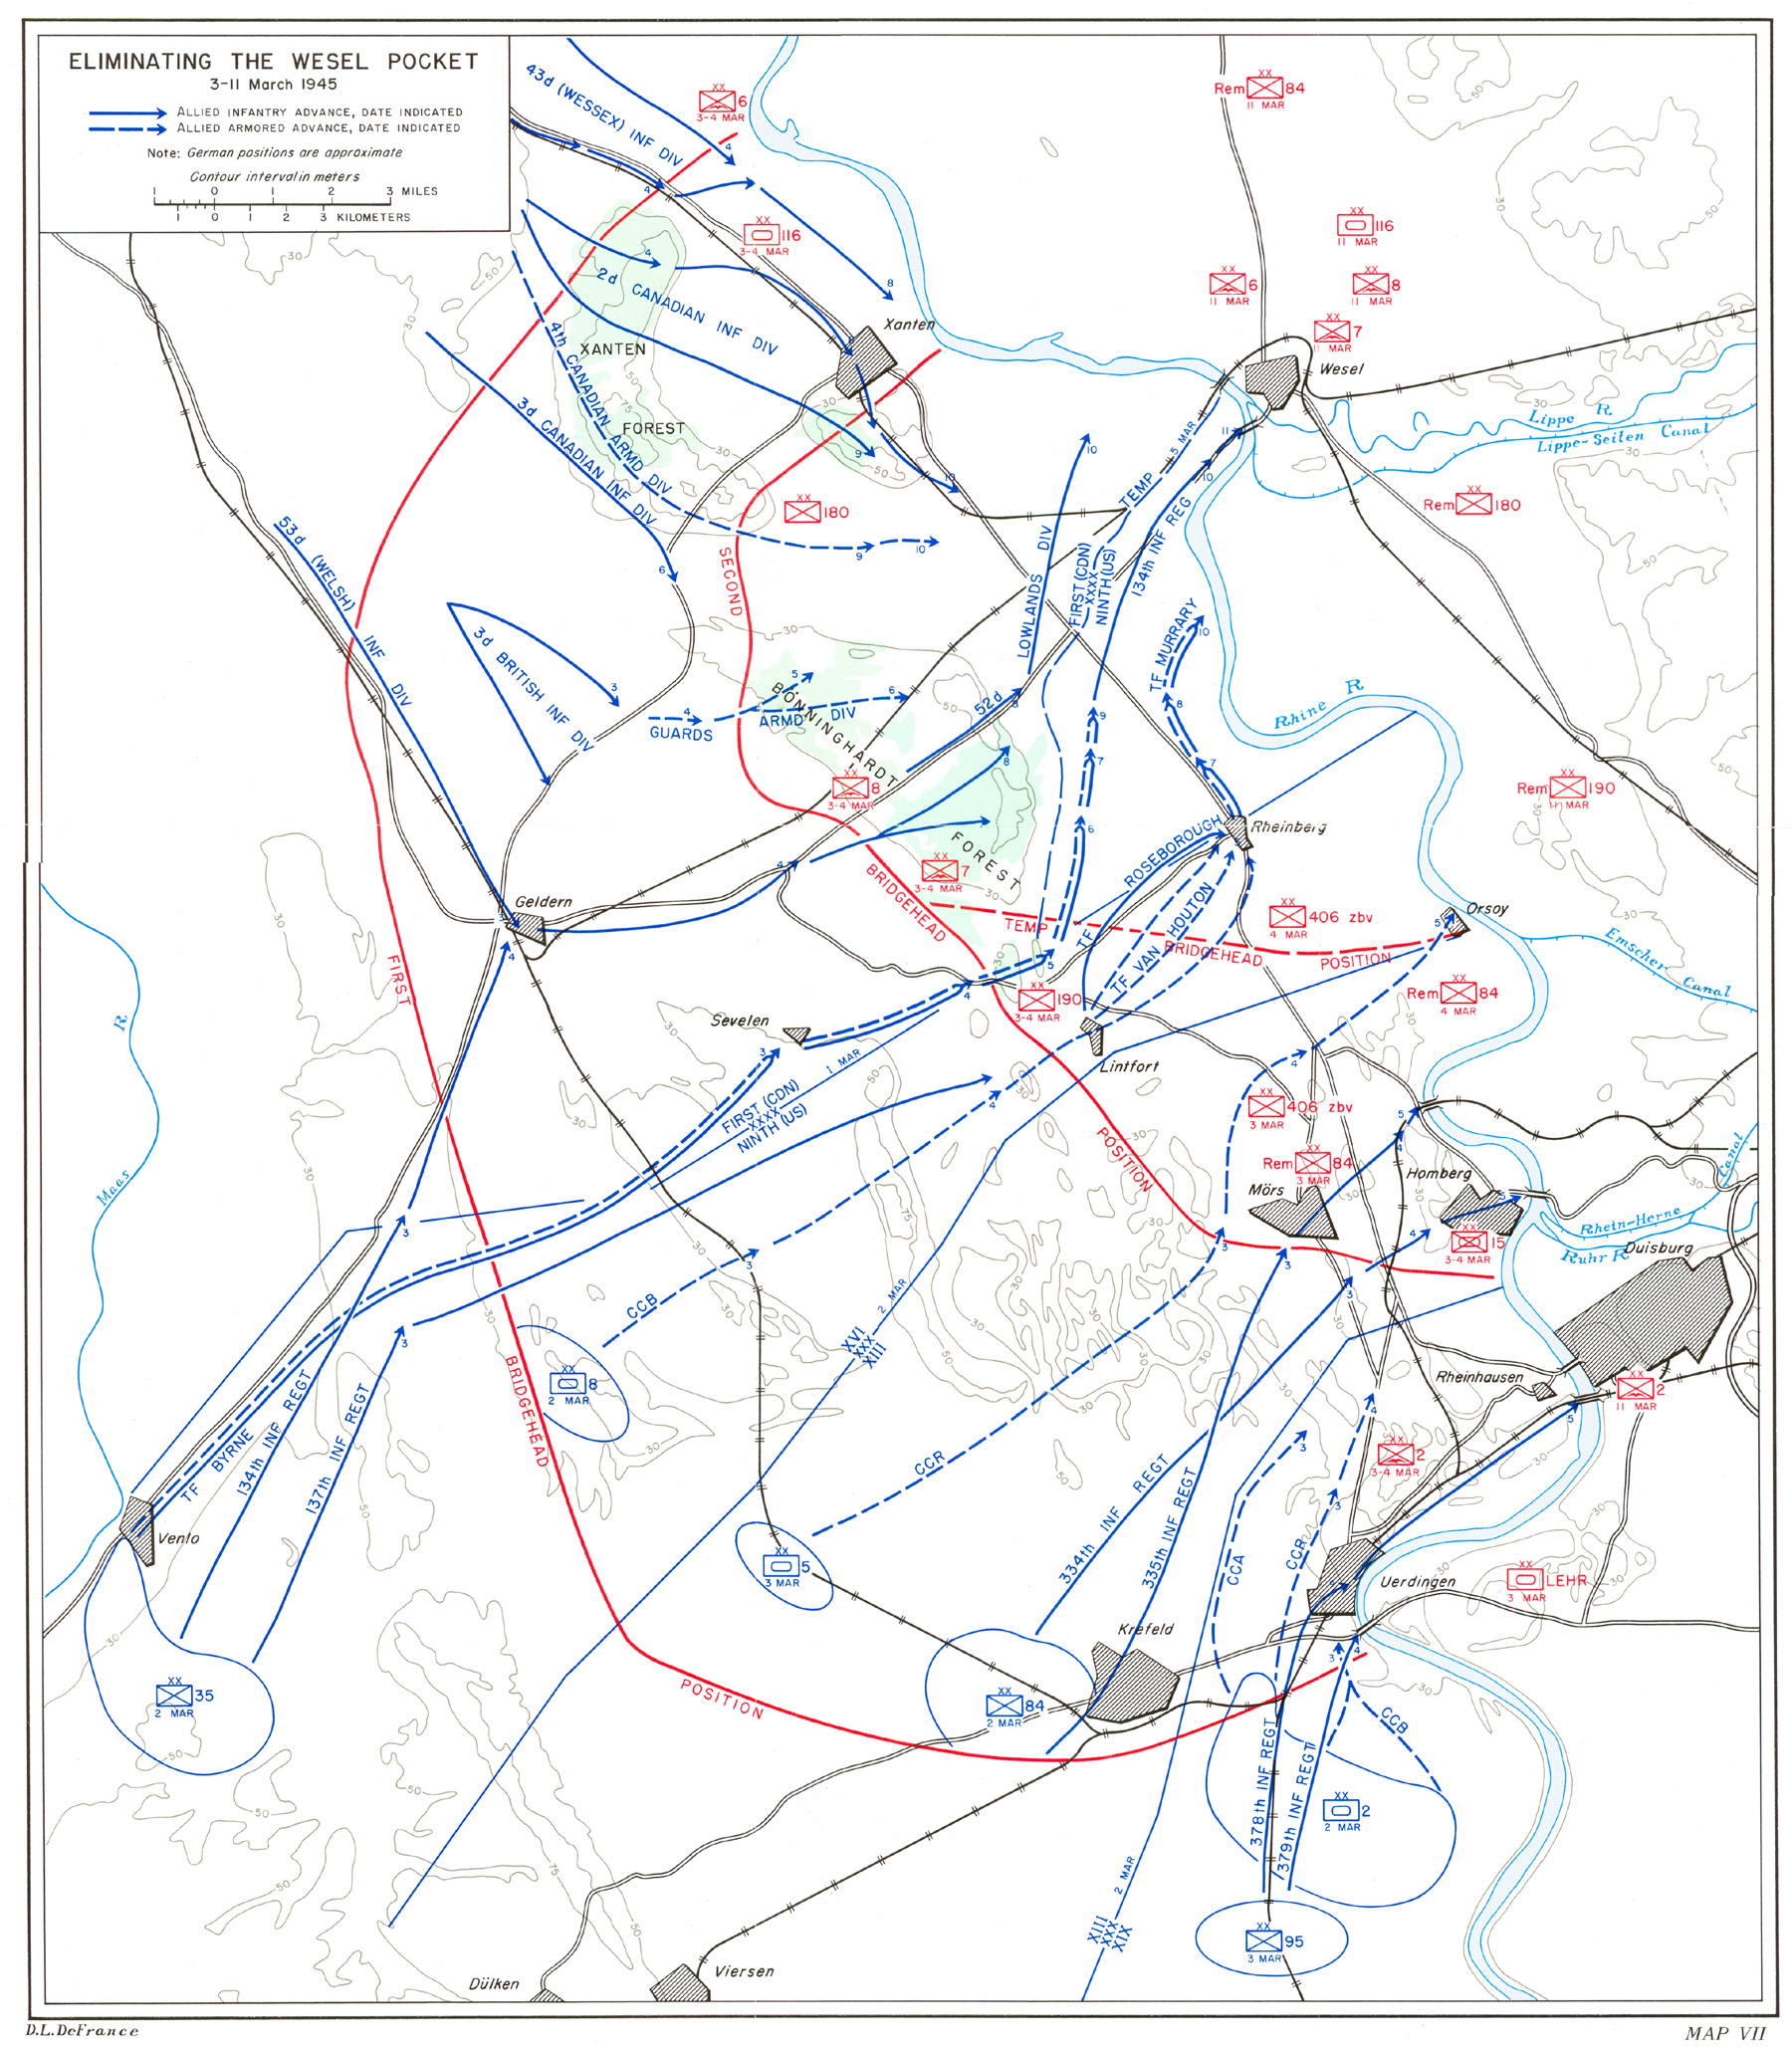 hyperwar the last offensive chapter 9 13th Infantry Division the 134th infantry made contact with the 1st british corps at geldern but resistance there too was determined although the 8th armored division still